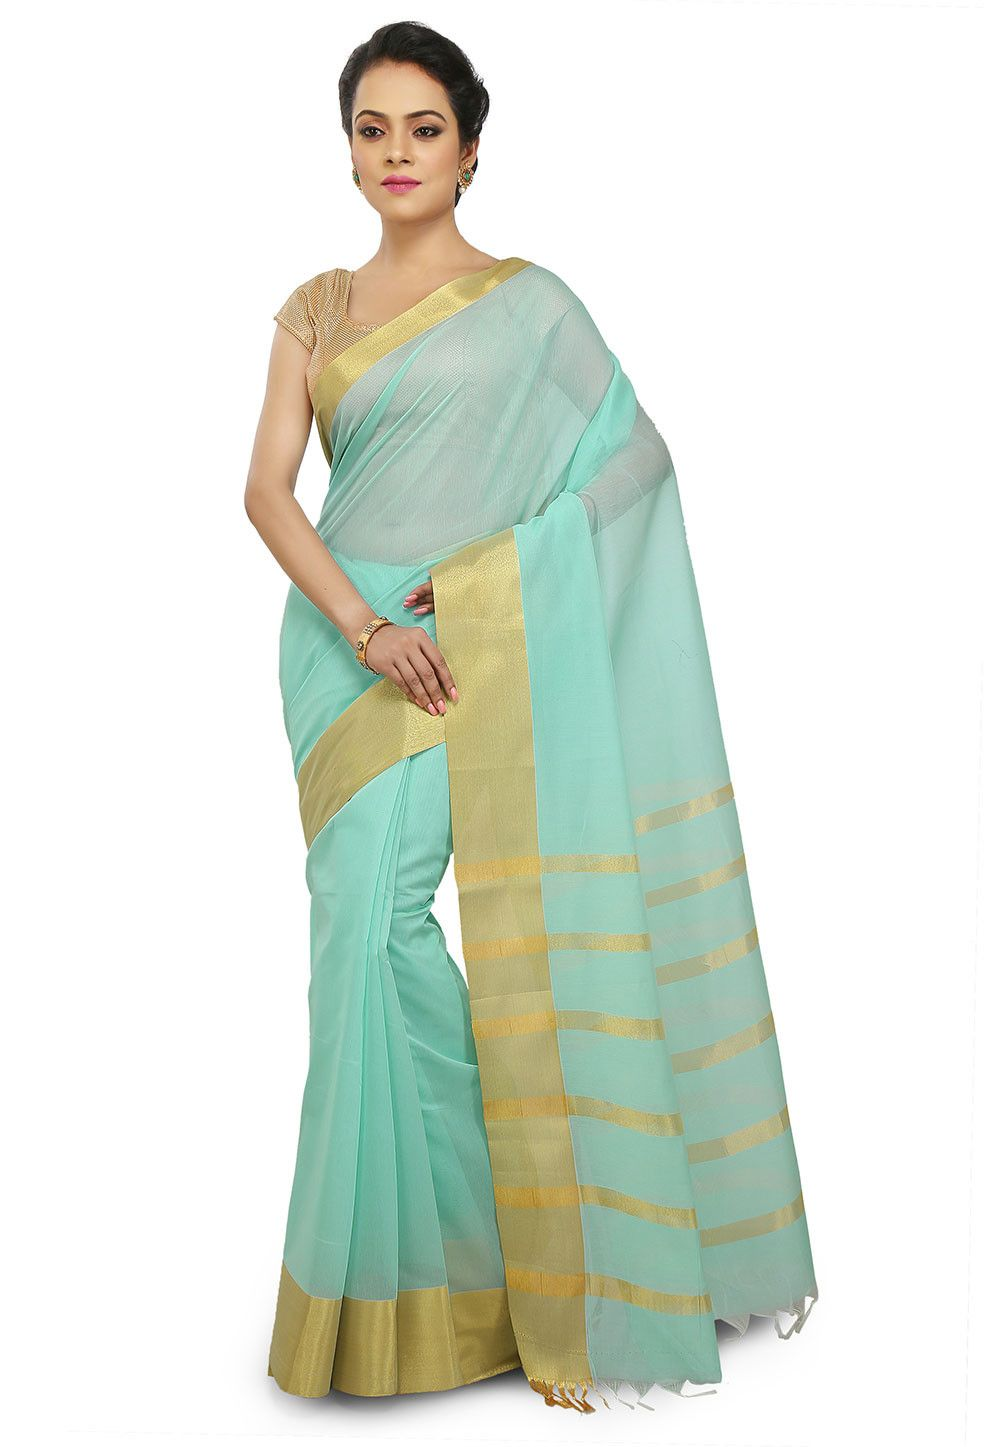 1f88dccf1531c4 Cotton Silk Saree in Sky Blue This Drape is Elegantly Woven in Zari and  Enhanced with Fringes Available with an Unstitched Cotton Silk Blouse in Sky  Blue ...